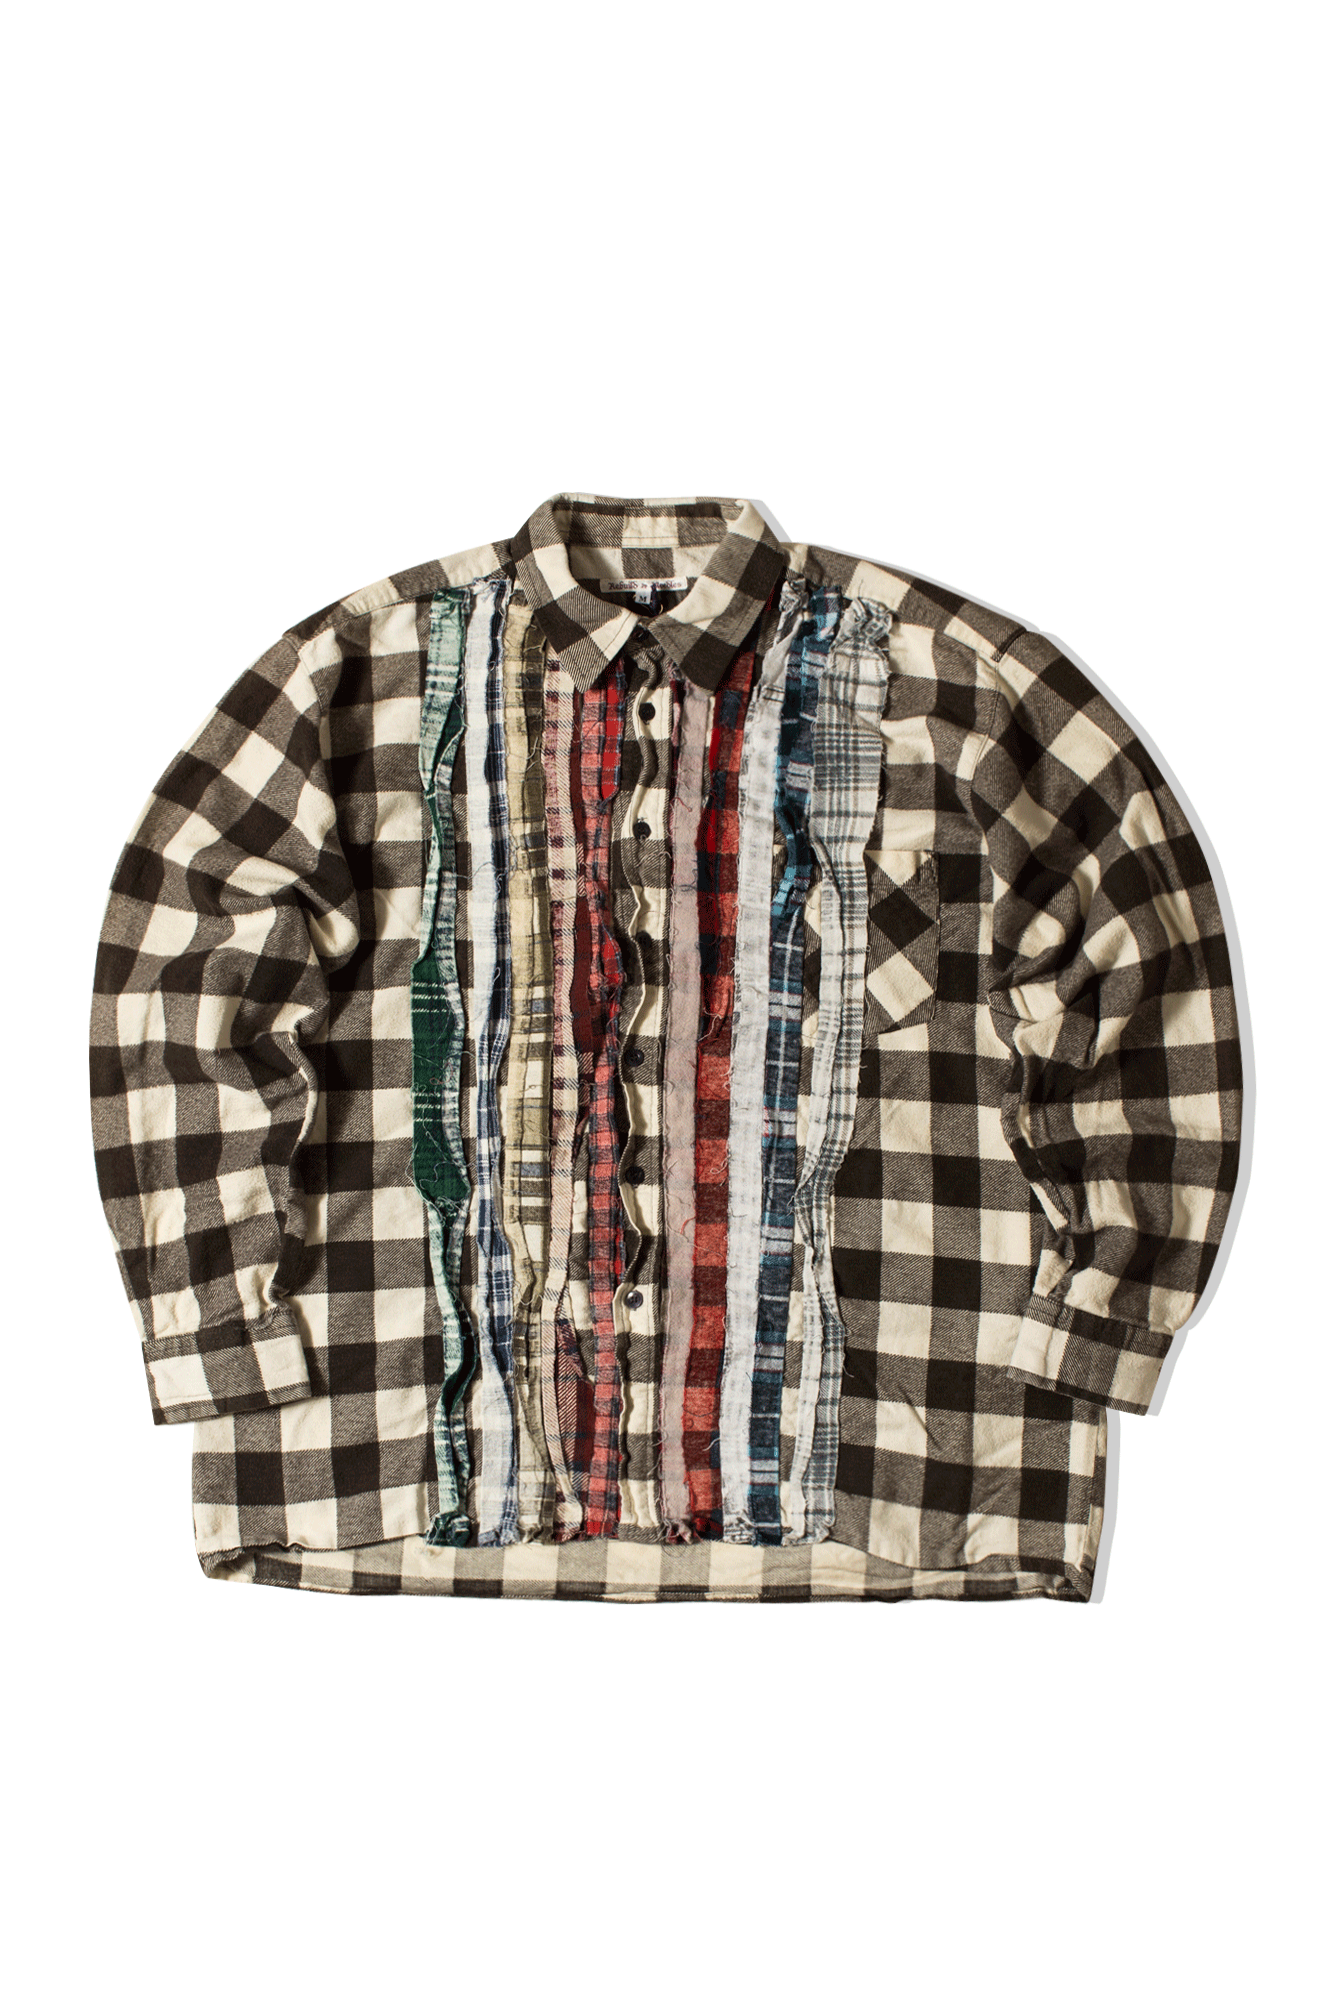 Needles Shirts Ribbon Flannel Shirt Multicolor IN244-M#000#MLT#M - One Block Down